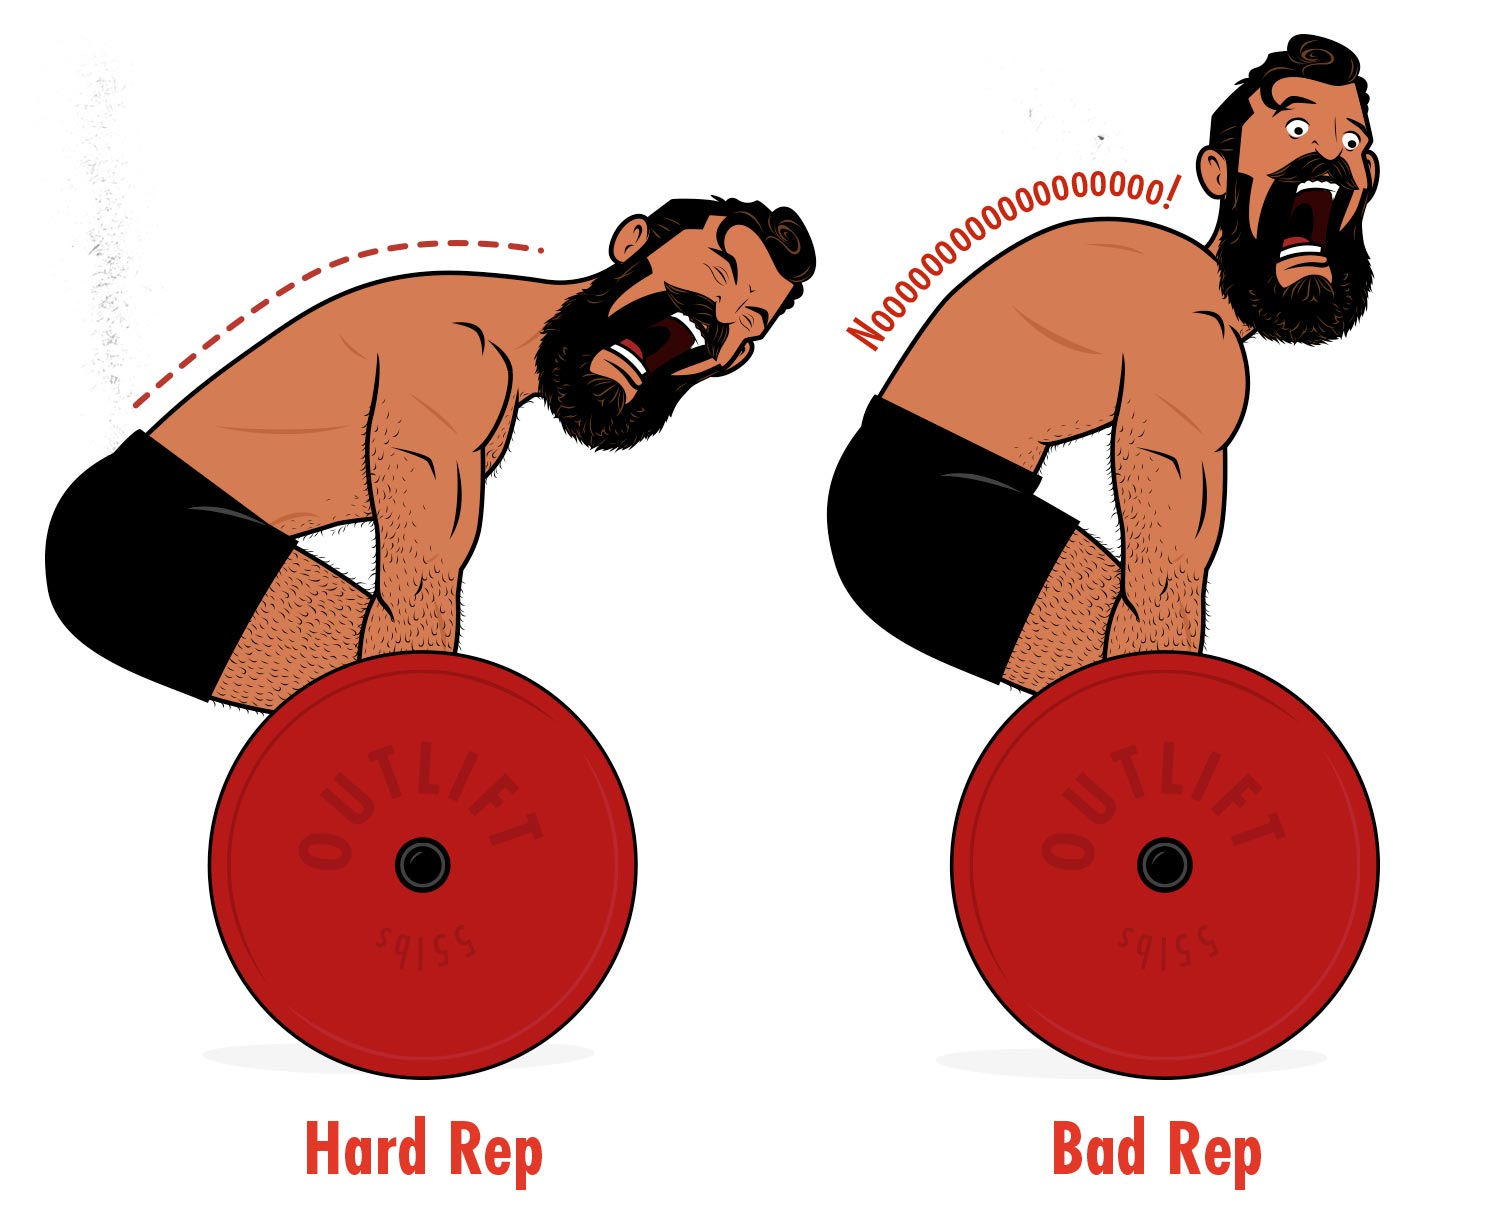 Outlift illustration showing a man deadlifting with a rounded back.